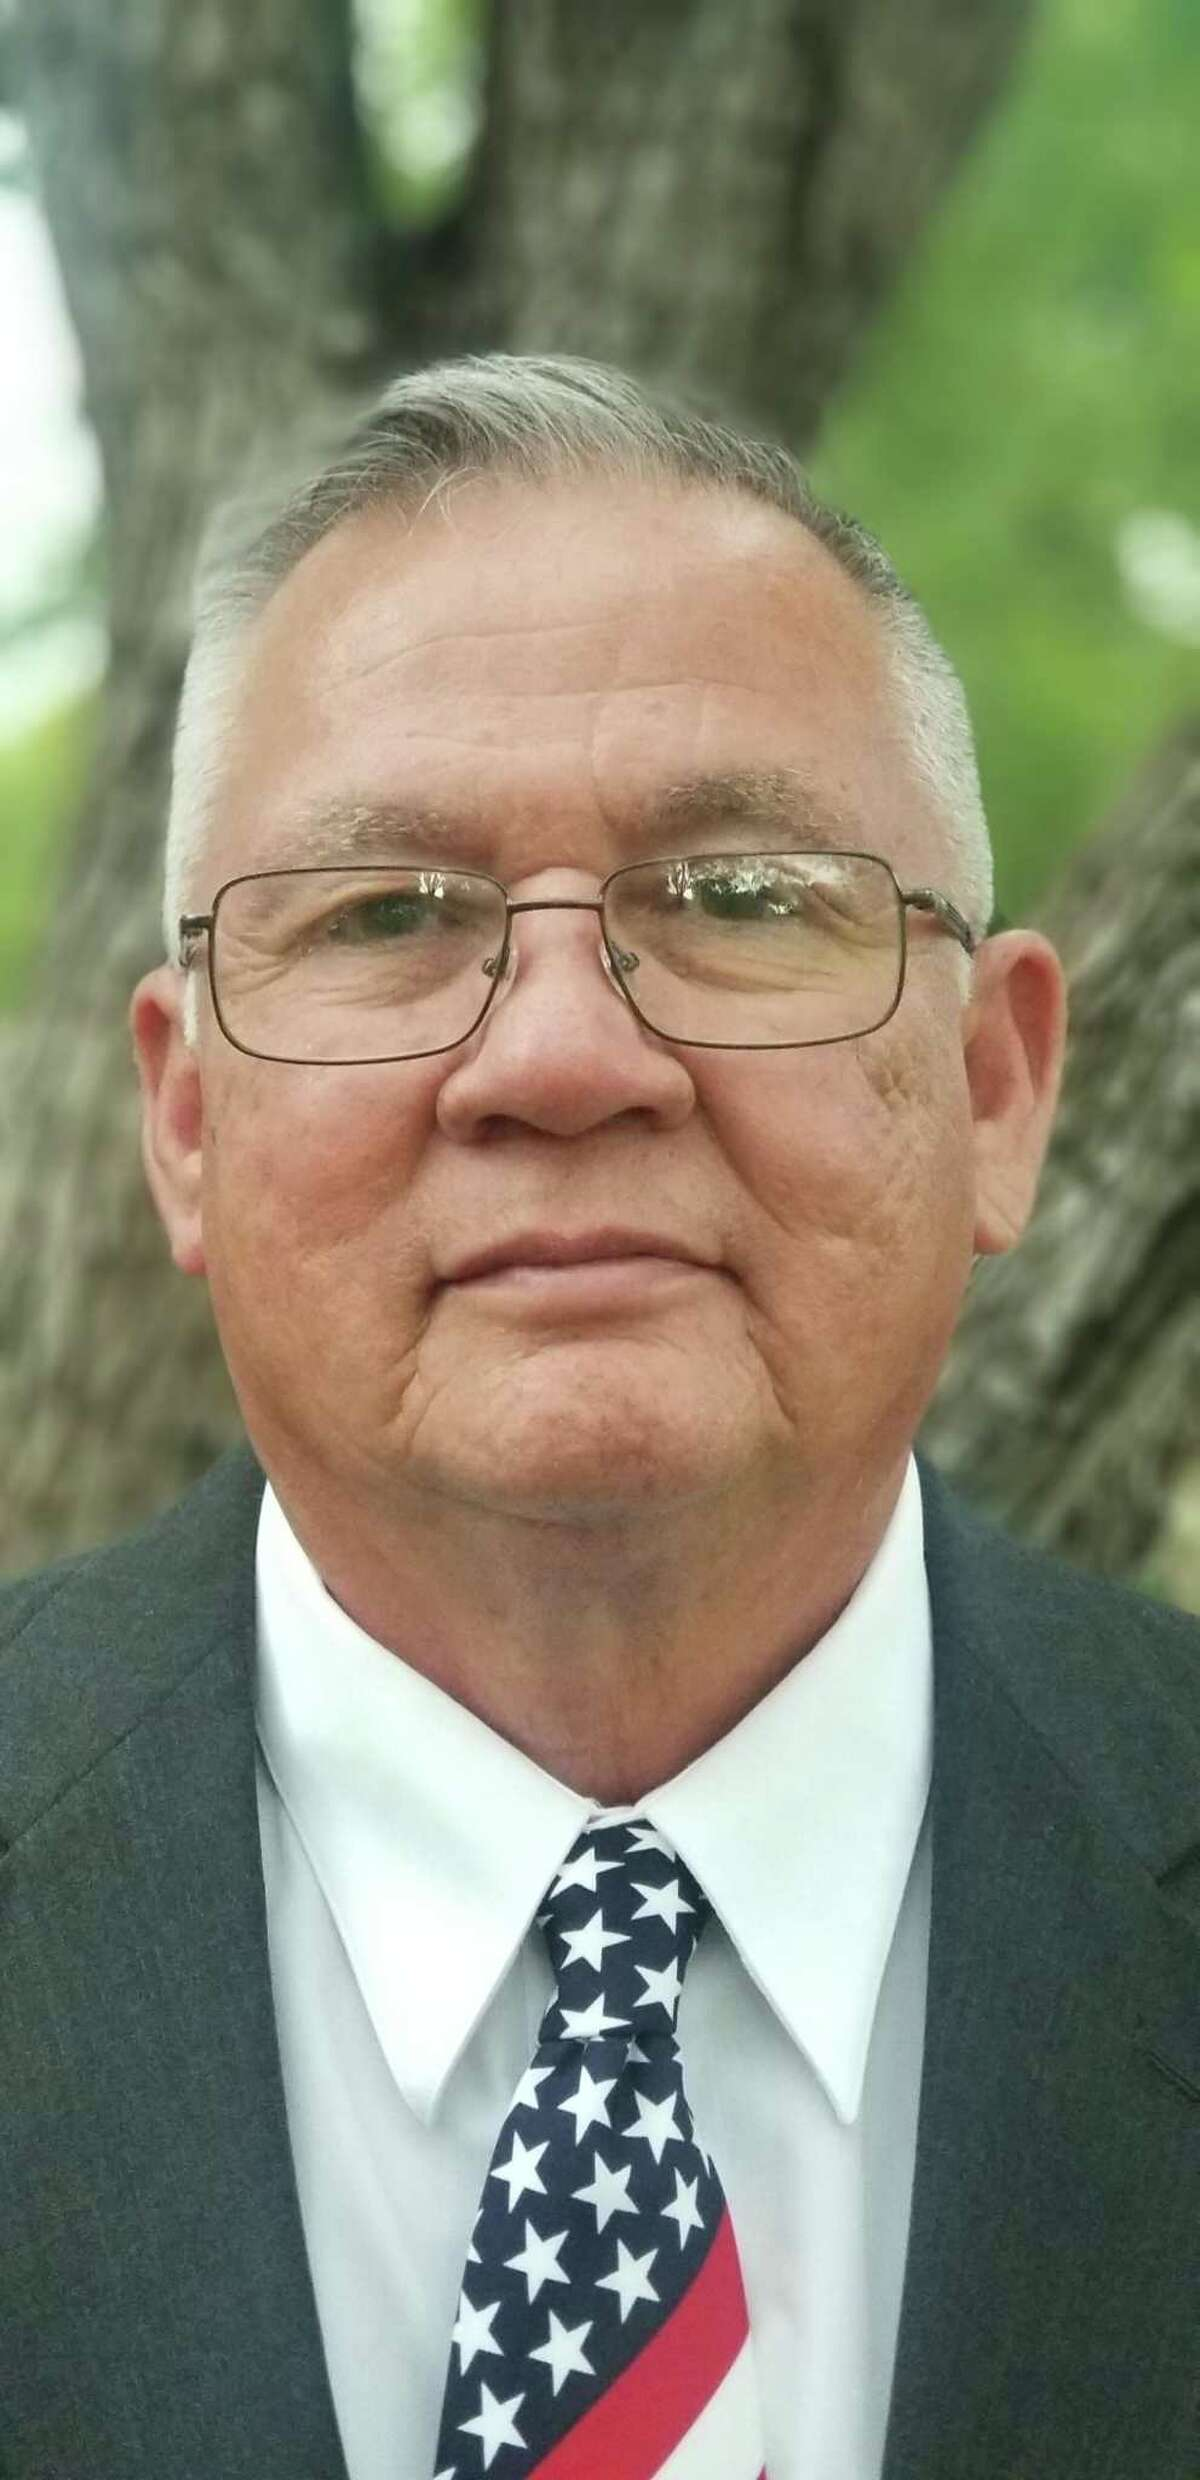 Gabriel Lara, 65, is running as a Republican for Precinct 1 commissioner on the Bexar County Commissioners Court.